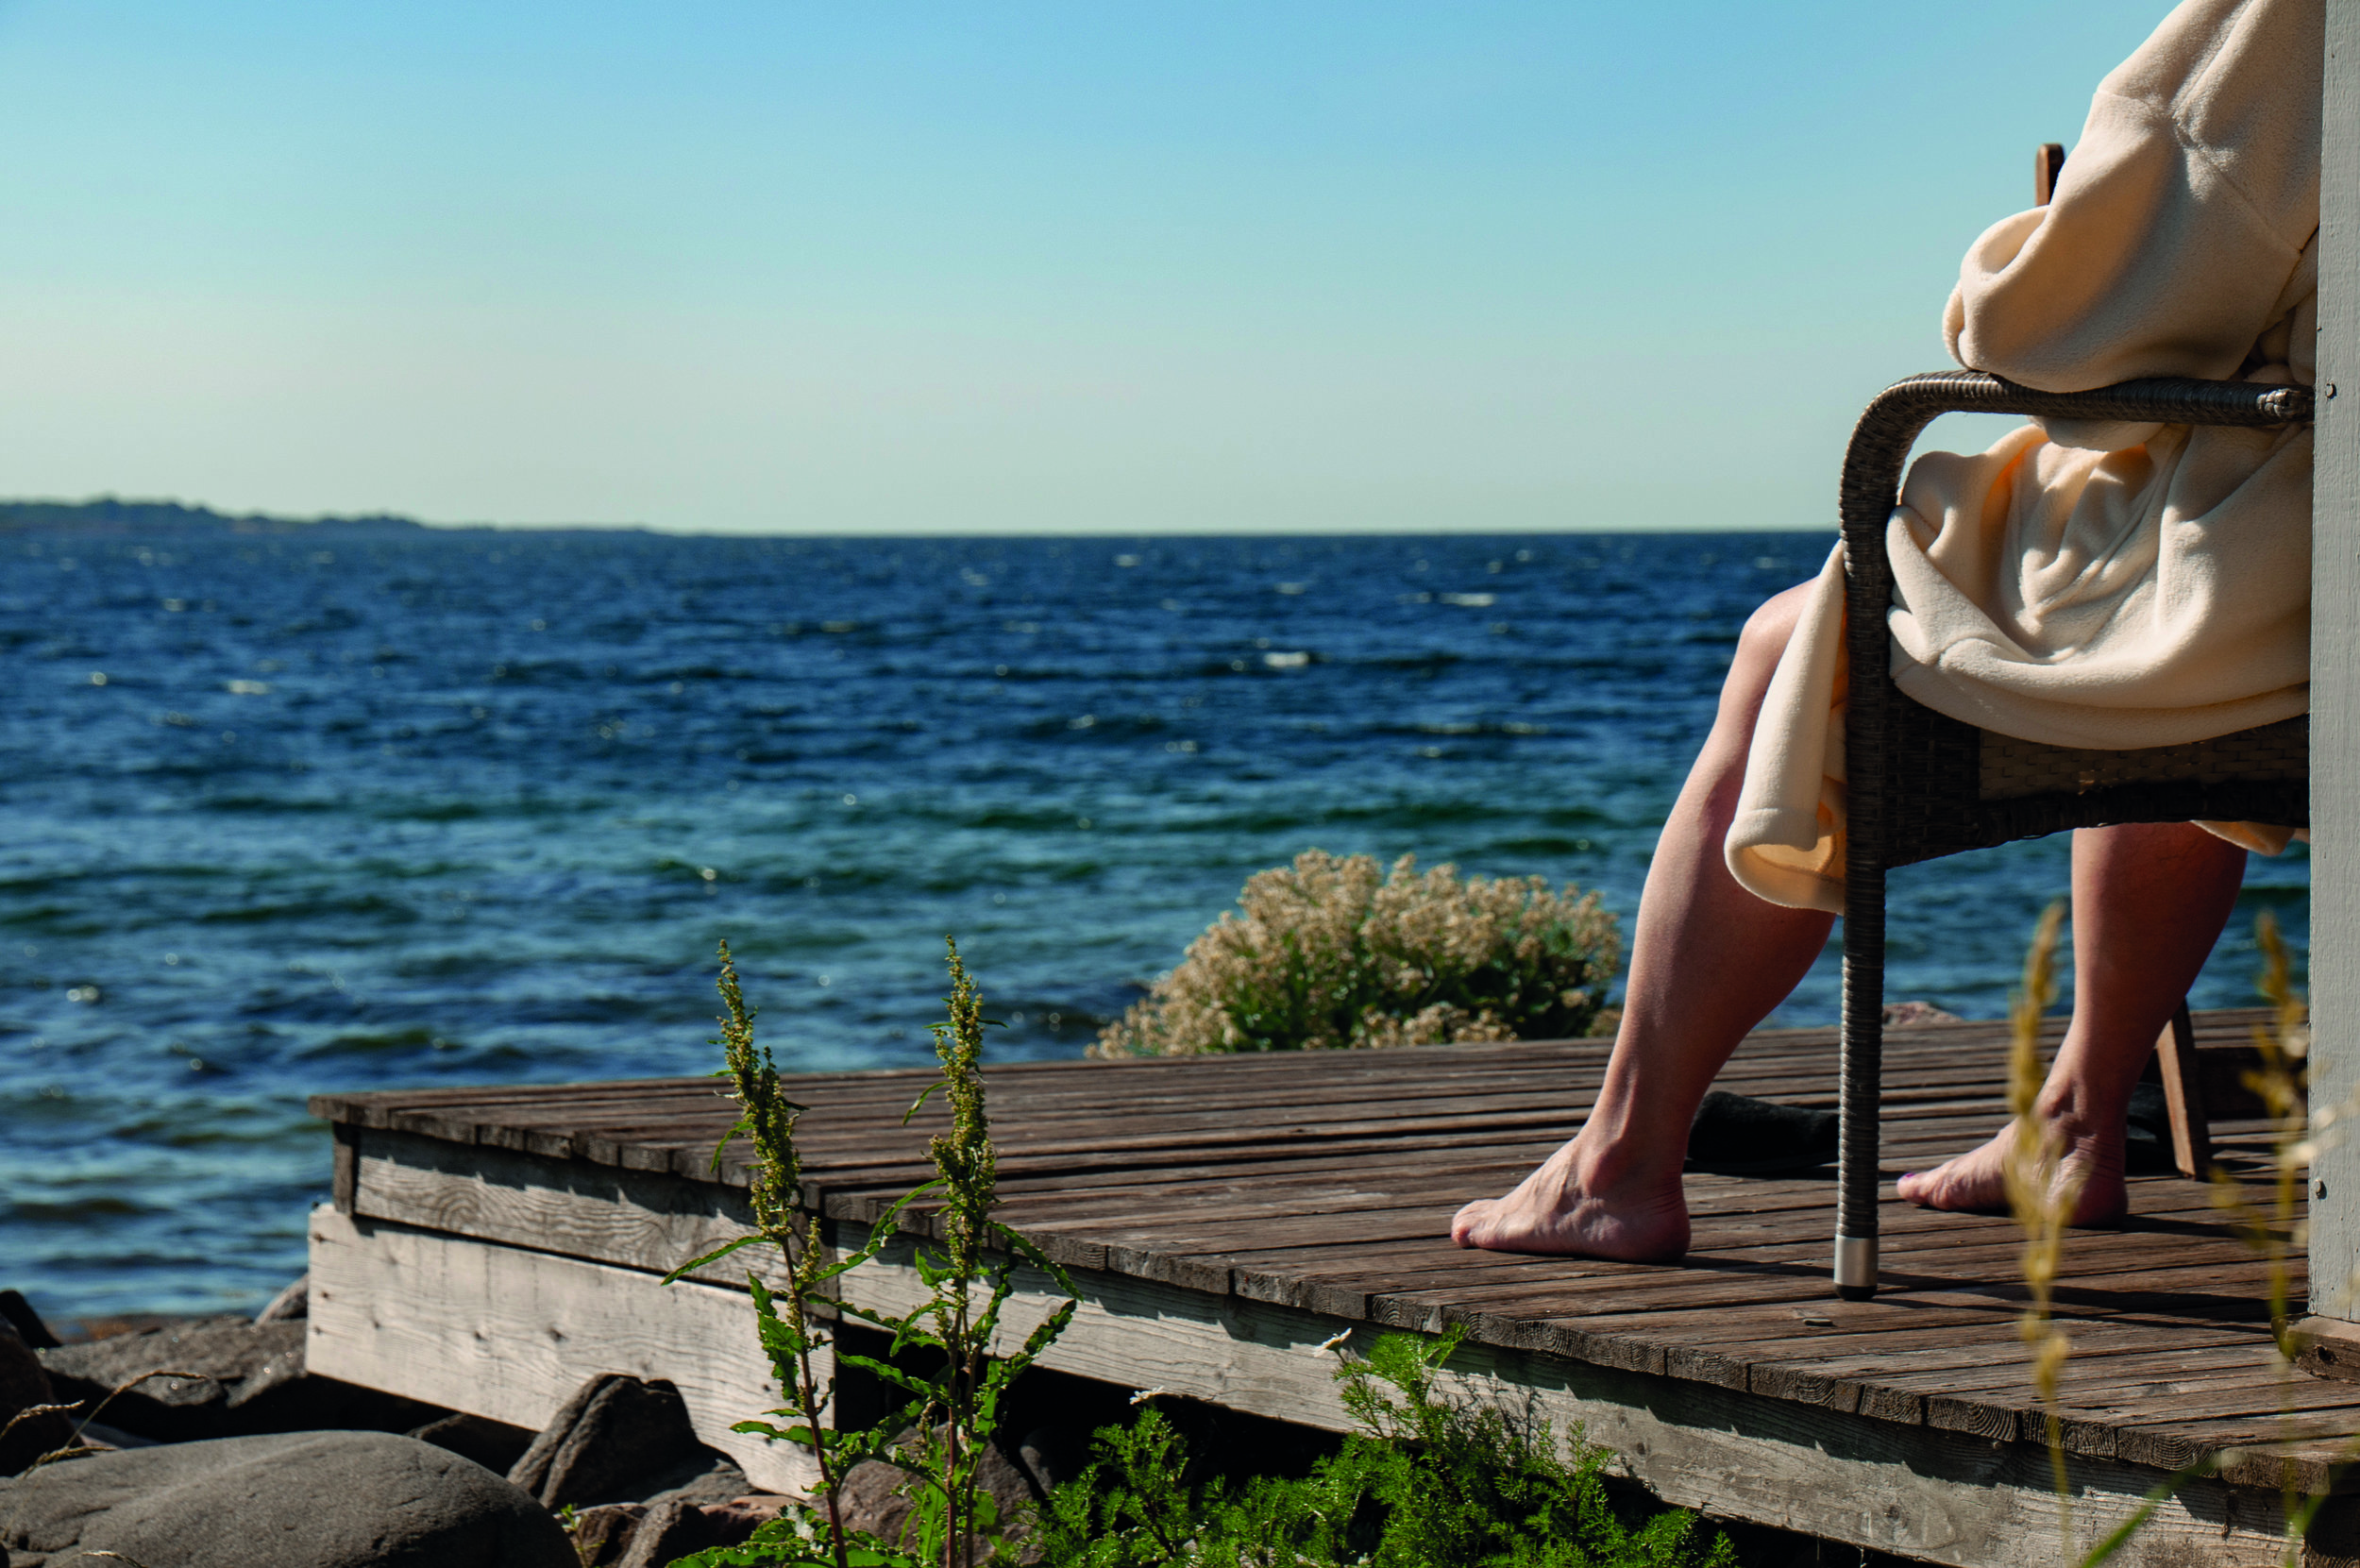 A morning dip in the Baltic Sea.